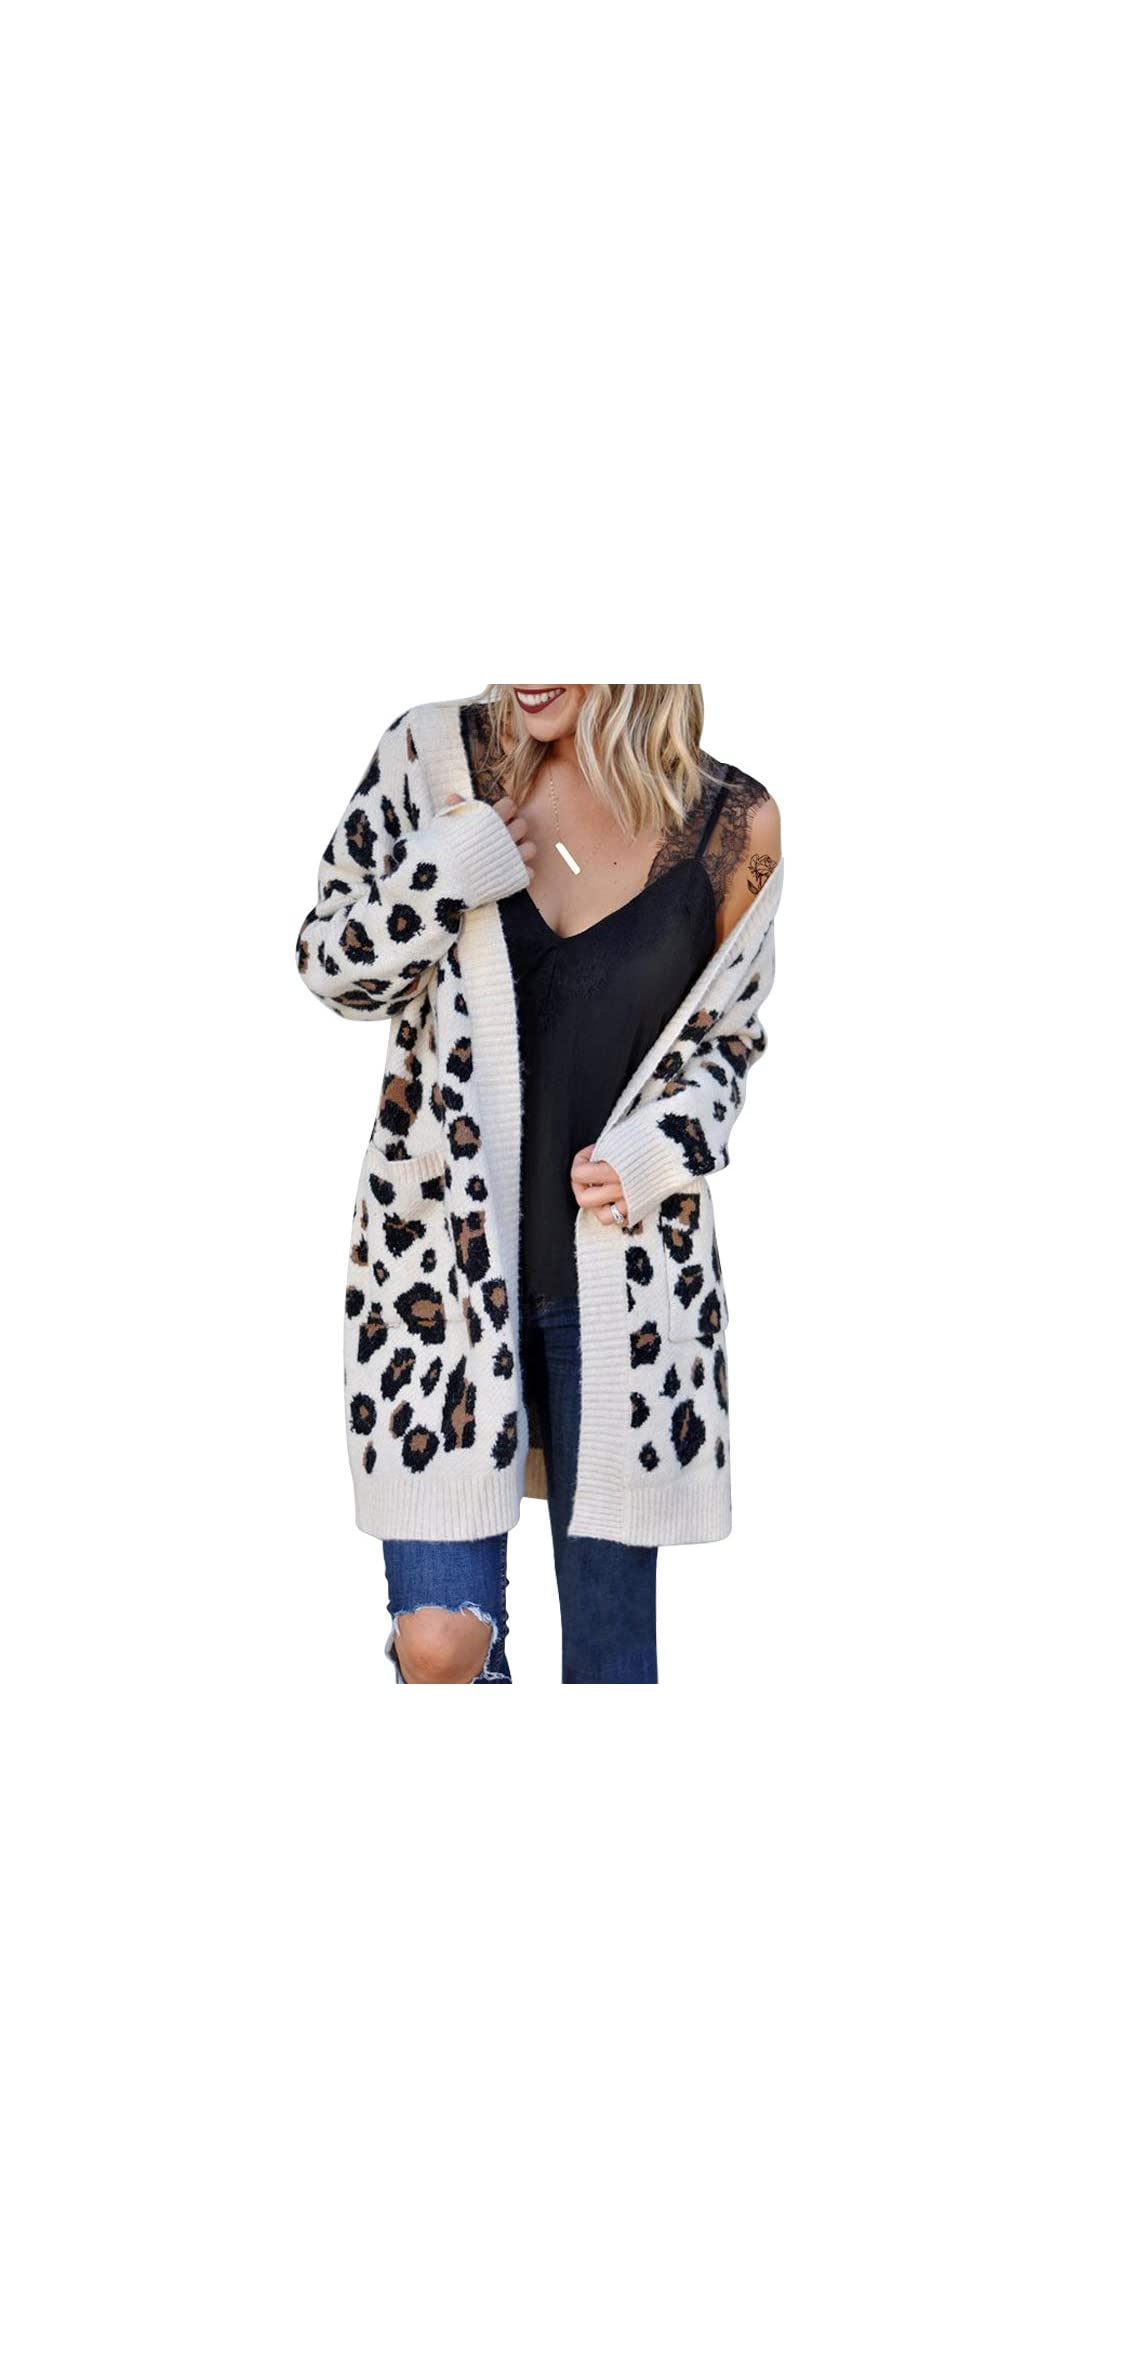 Women's Cardigans With Pockets Oversized Loose Leopard